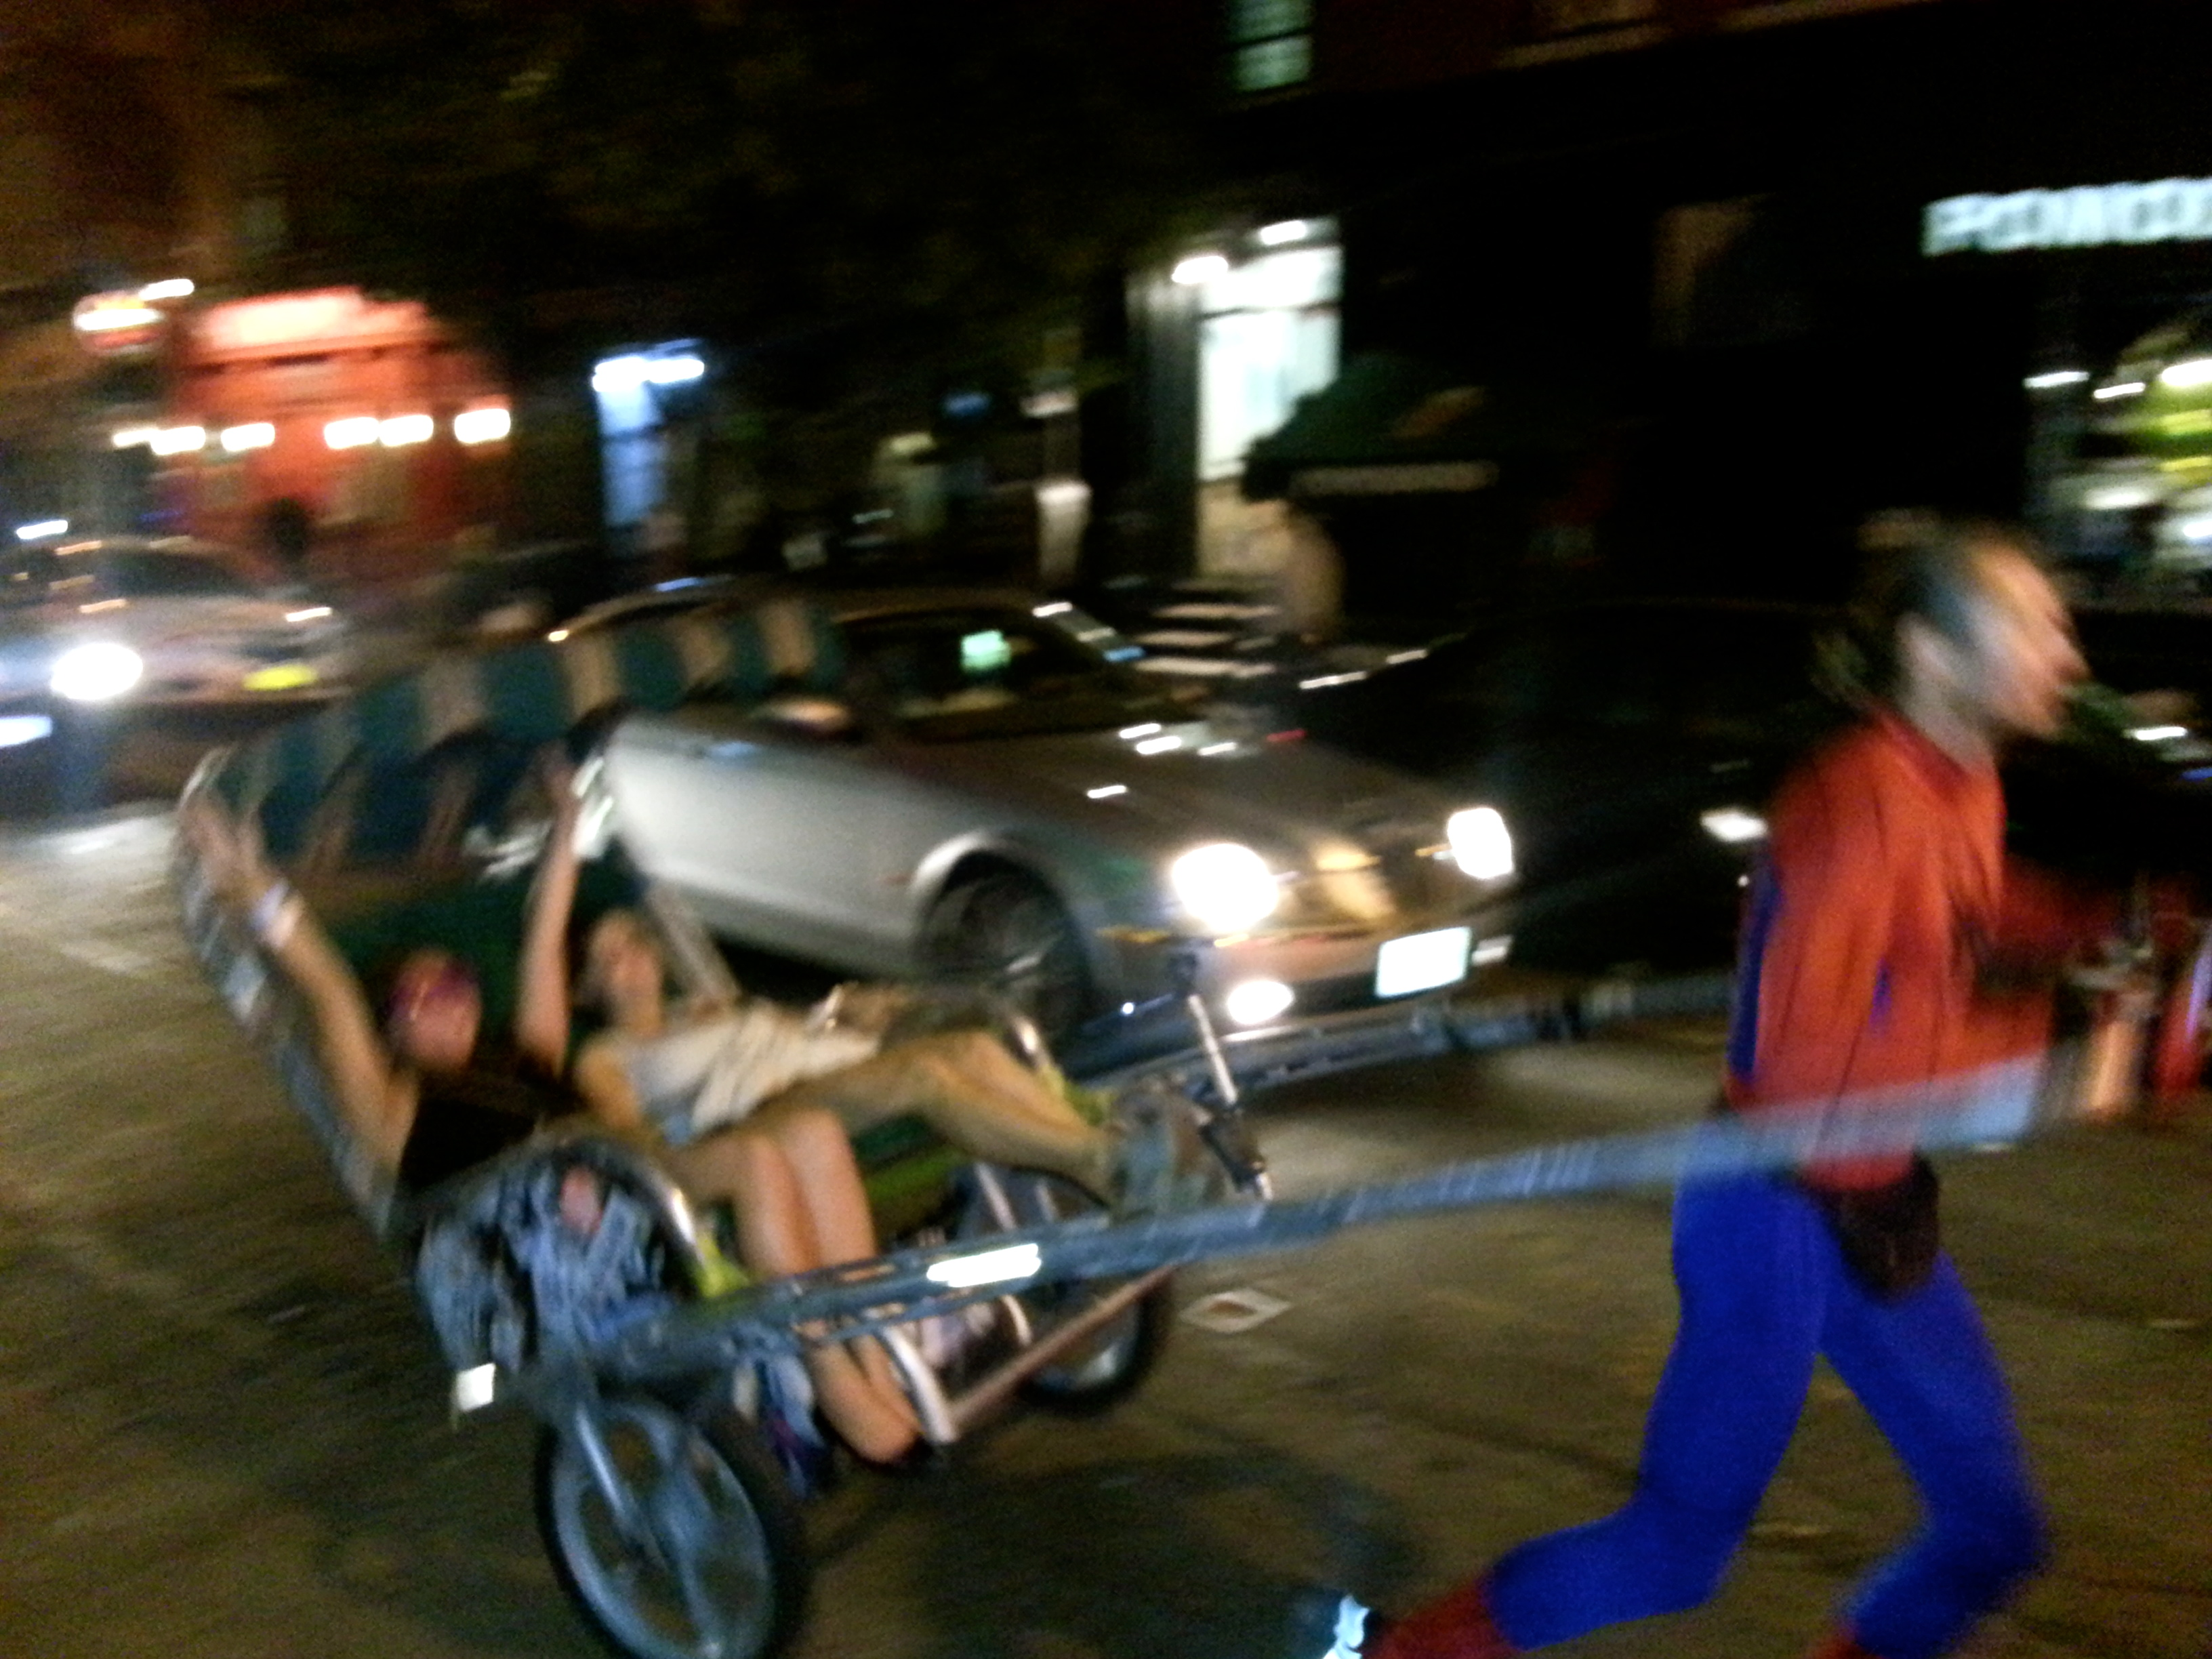 Very willingly accepting a ride from a lunatic on the streets half dressed like spider man in his homemade buggy.